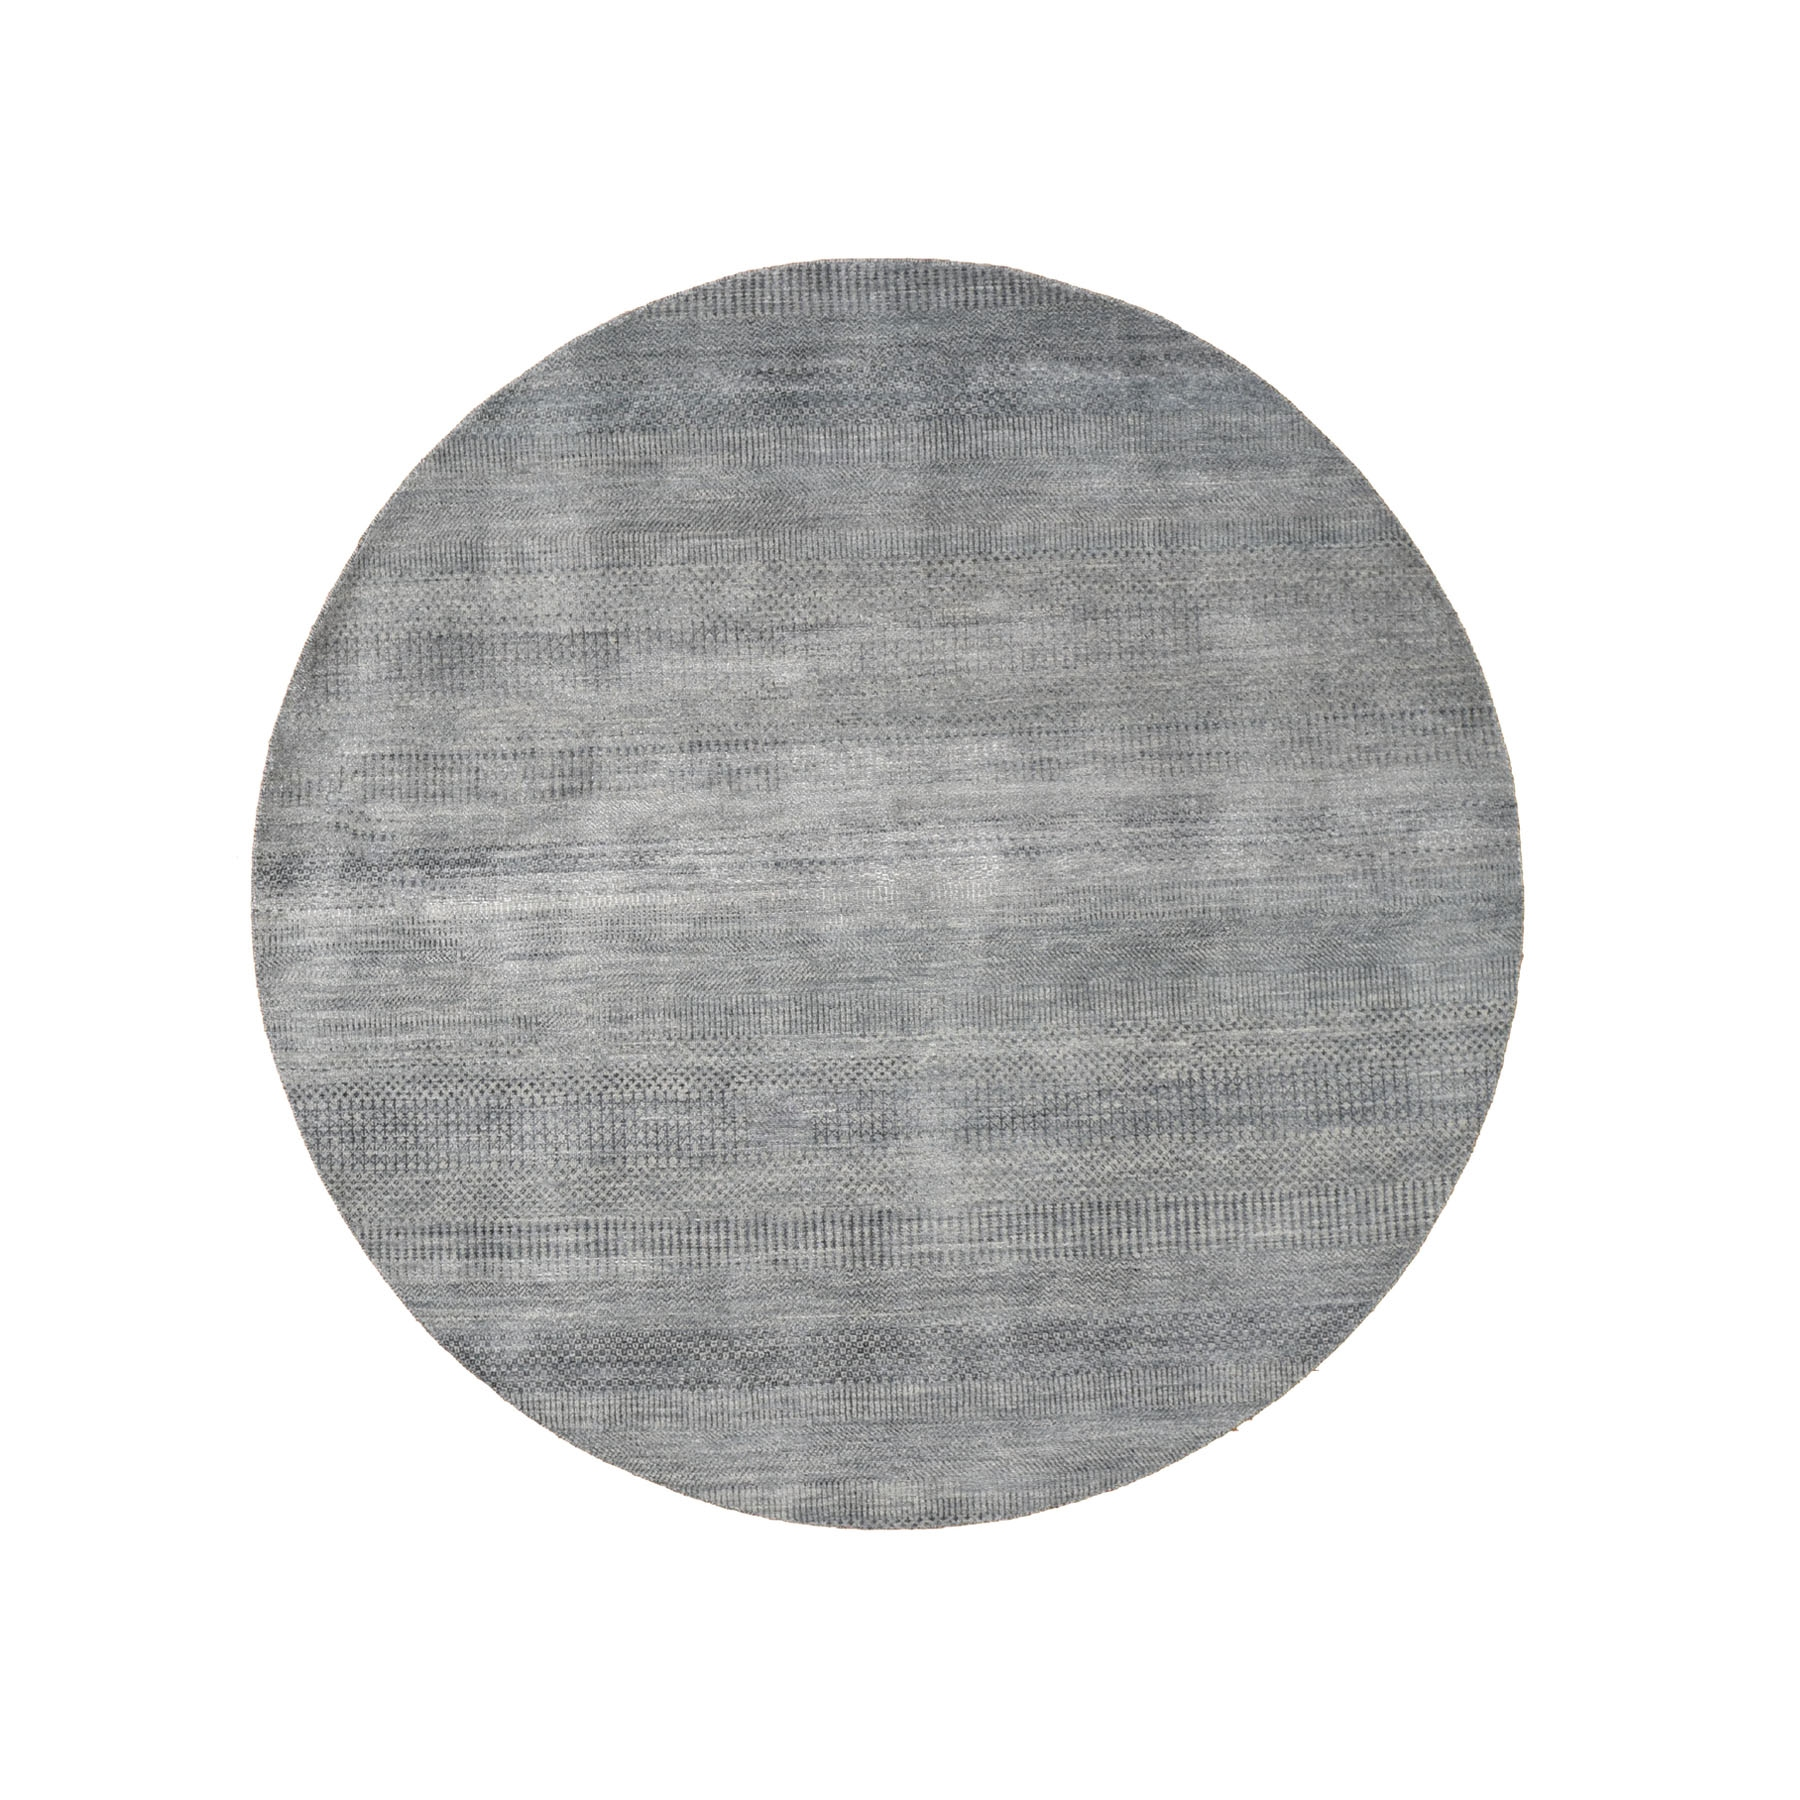 6'x6' Round Gray Grass Design Wool And Silk Hand Knotted Oriental Rug 48489